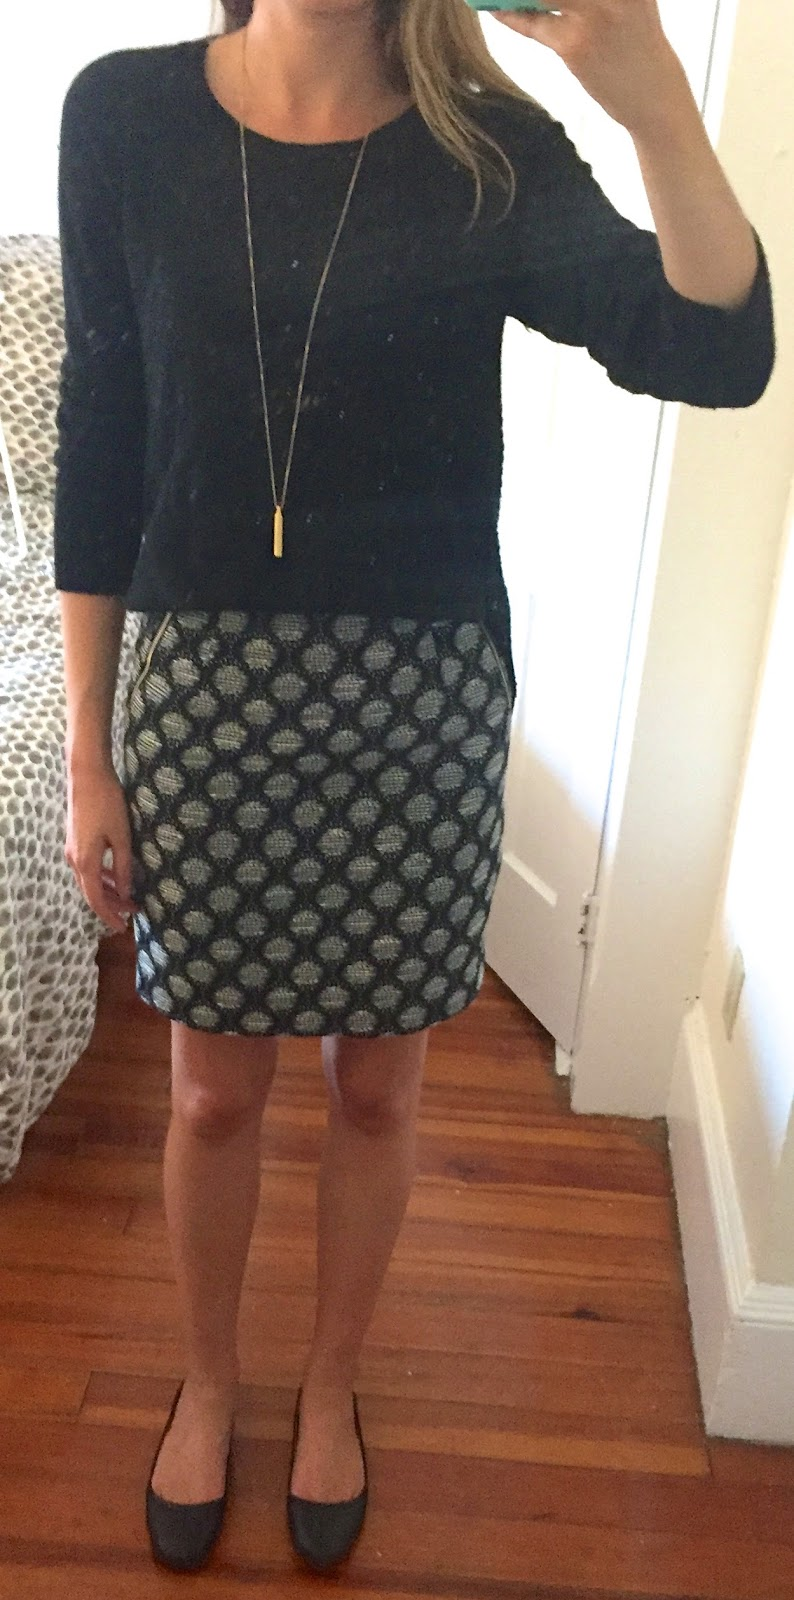 new product 5b822 c8294 outfit post – sister week  black sweater, patterned pencil skirt, black  flats